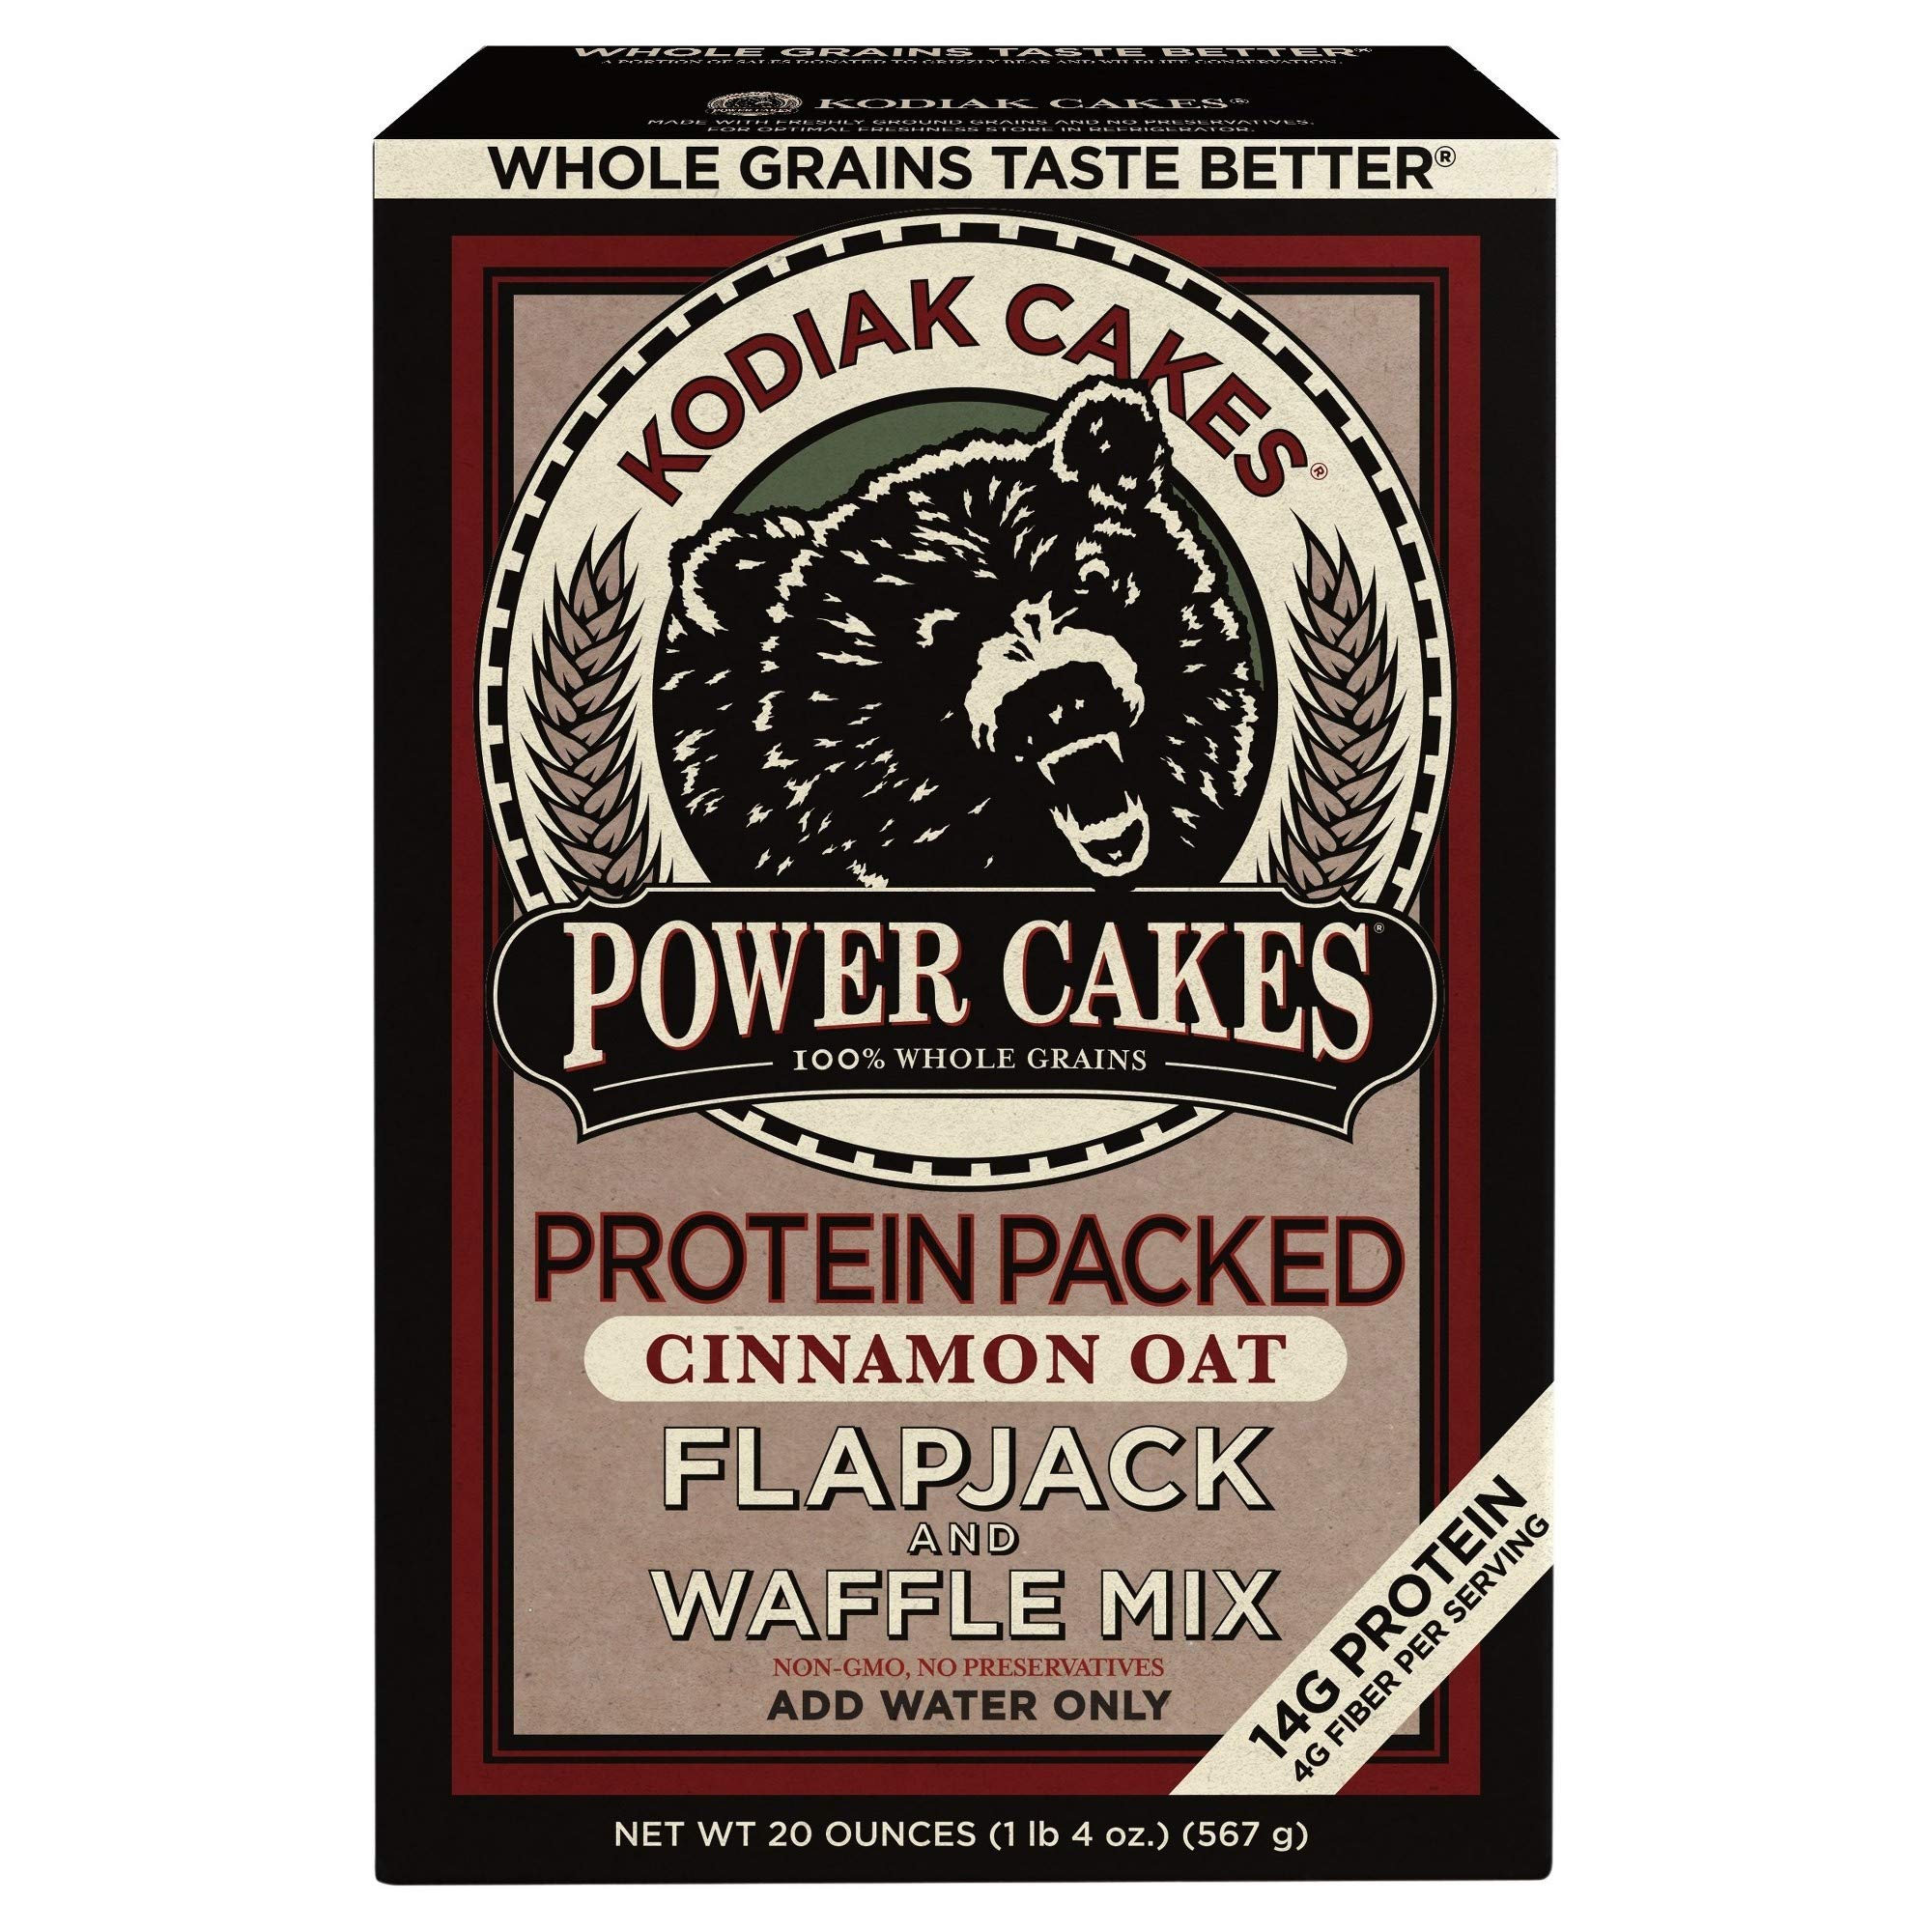 Power Cakes Cinnamon Oat Flapjack & Waffle Mix (Pack of 16) by Generic (Image #2)